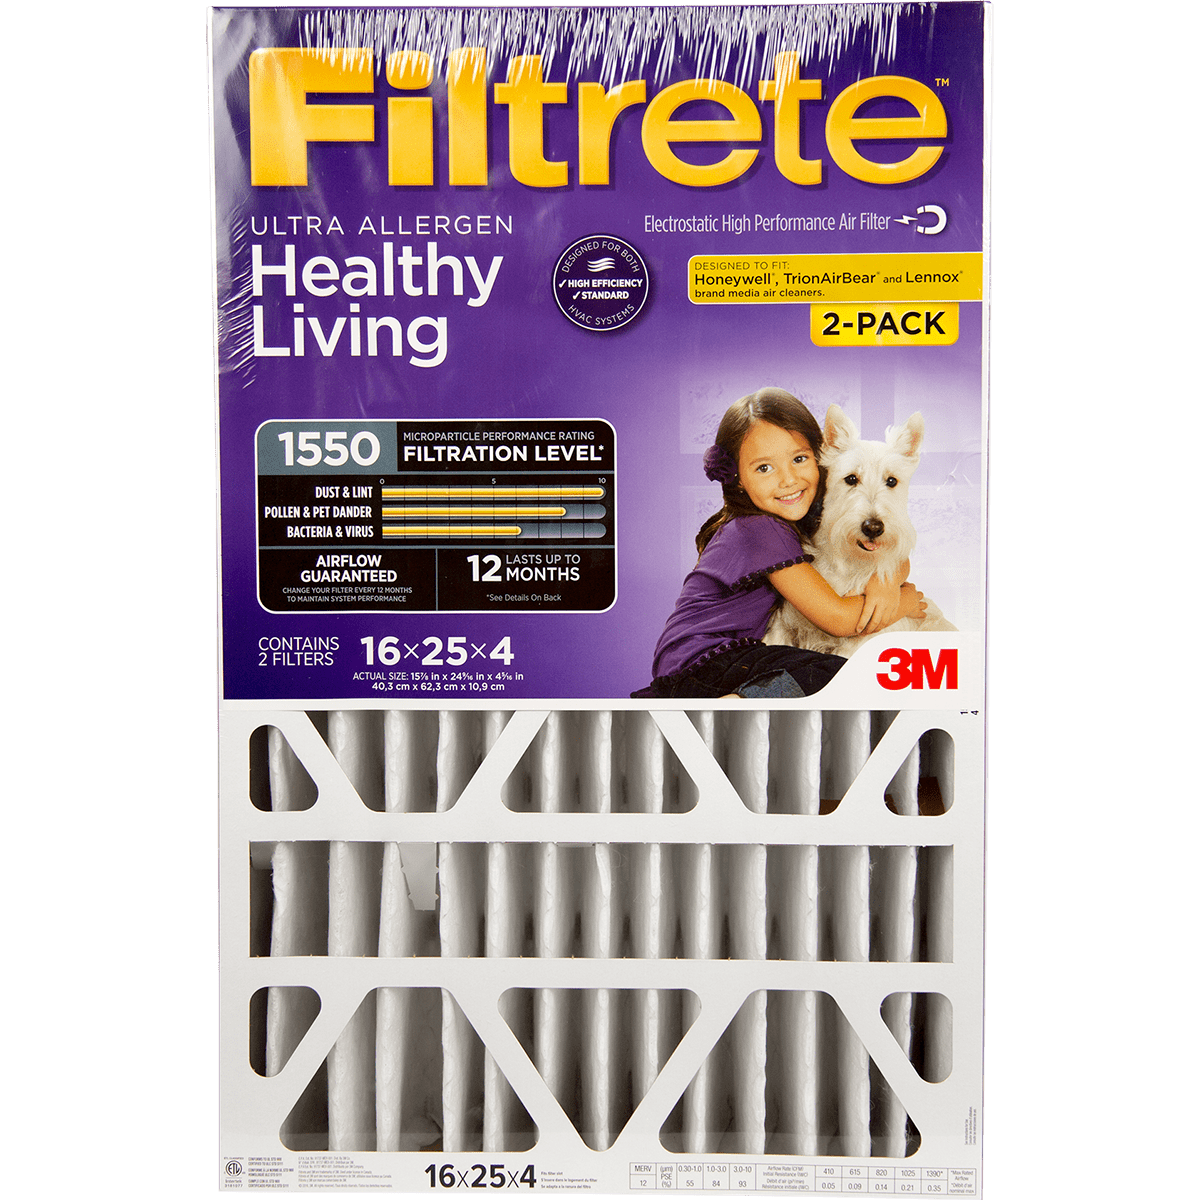 "3M Filtrete Healthy Living 1550 MPR Ultra Allergen Reduction Filters for 4"""" Housings"" fi5643"